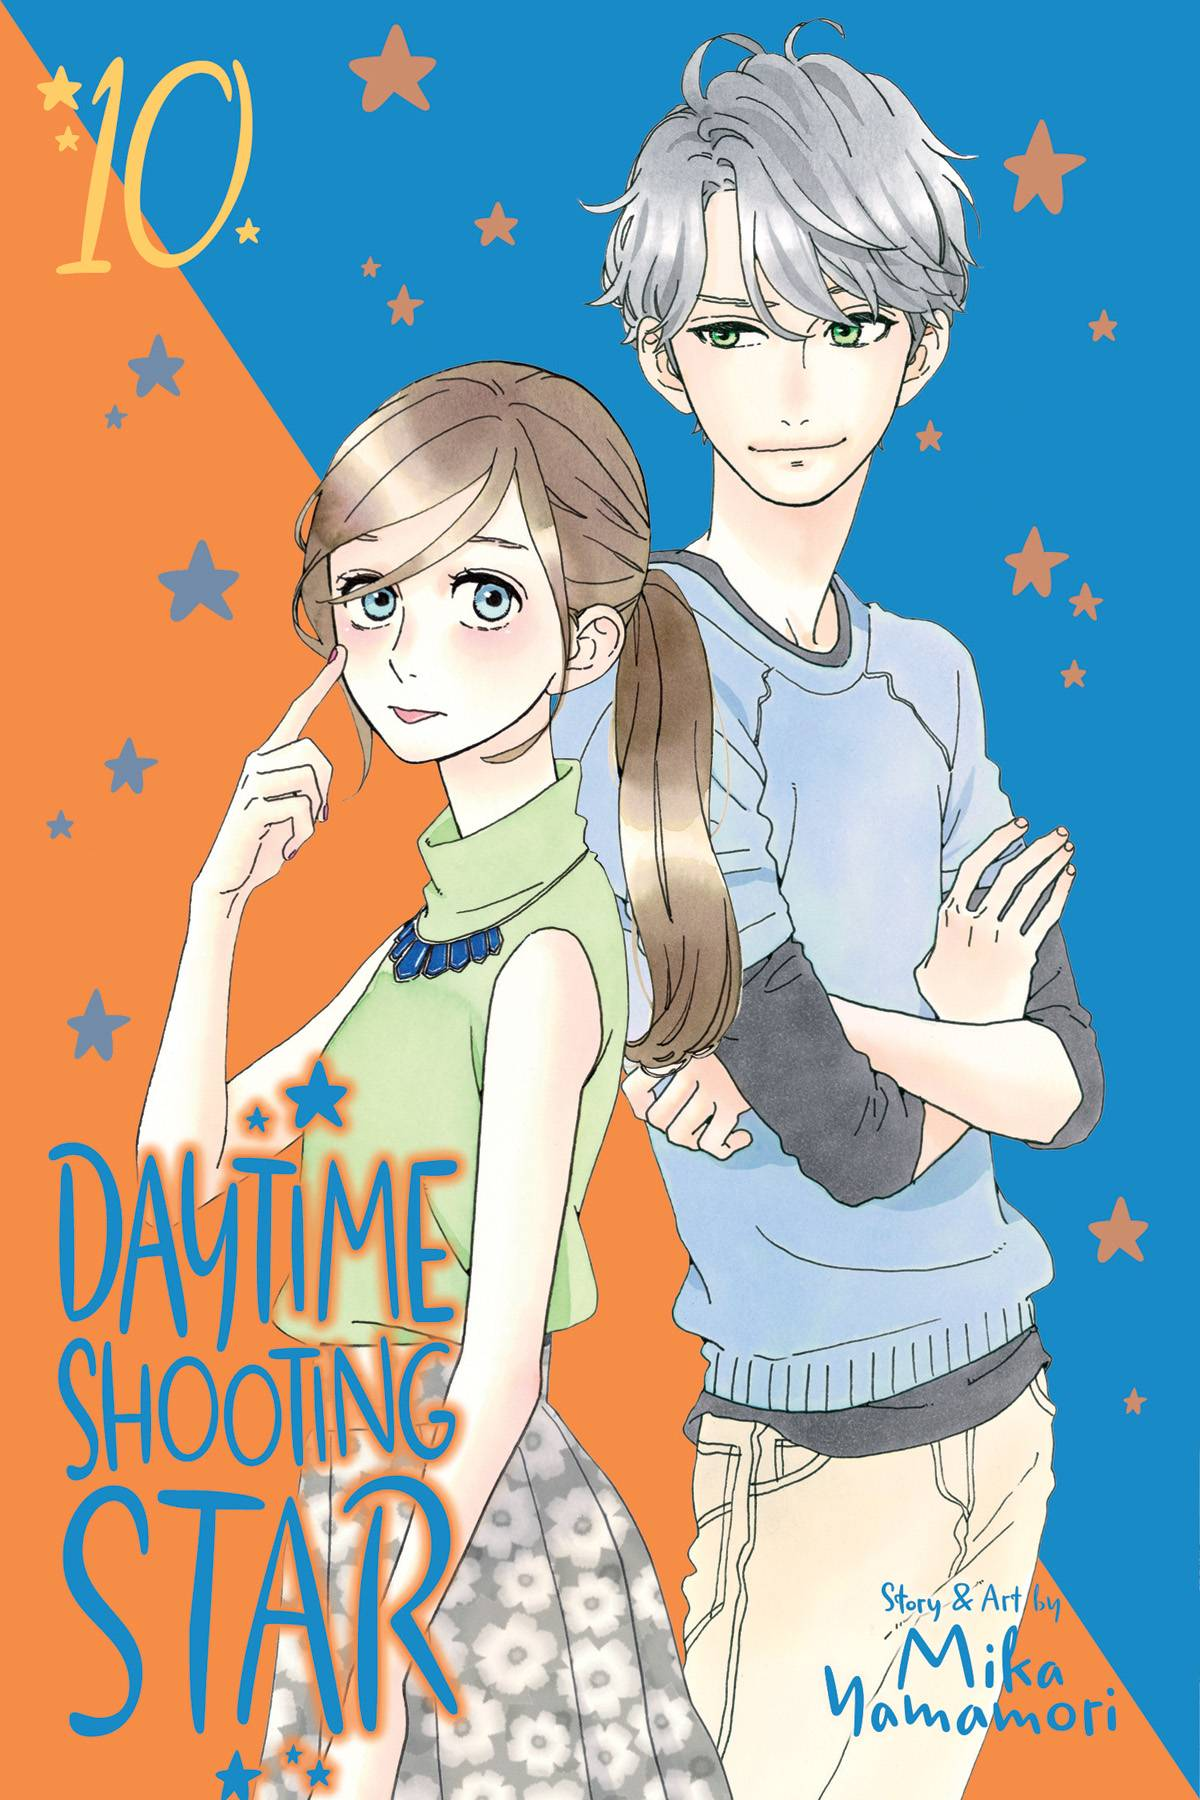 DAYTIME SHOOTING STAR GN 10